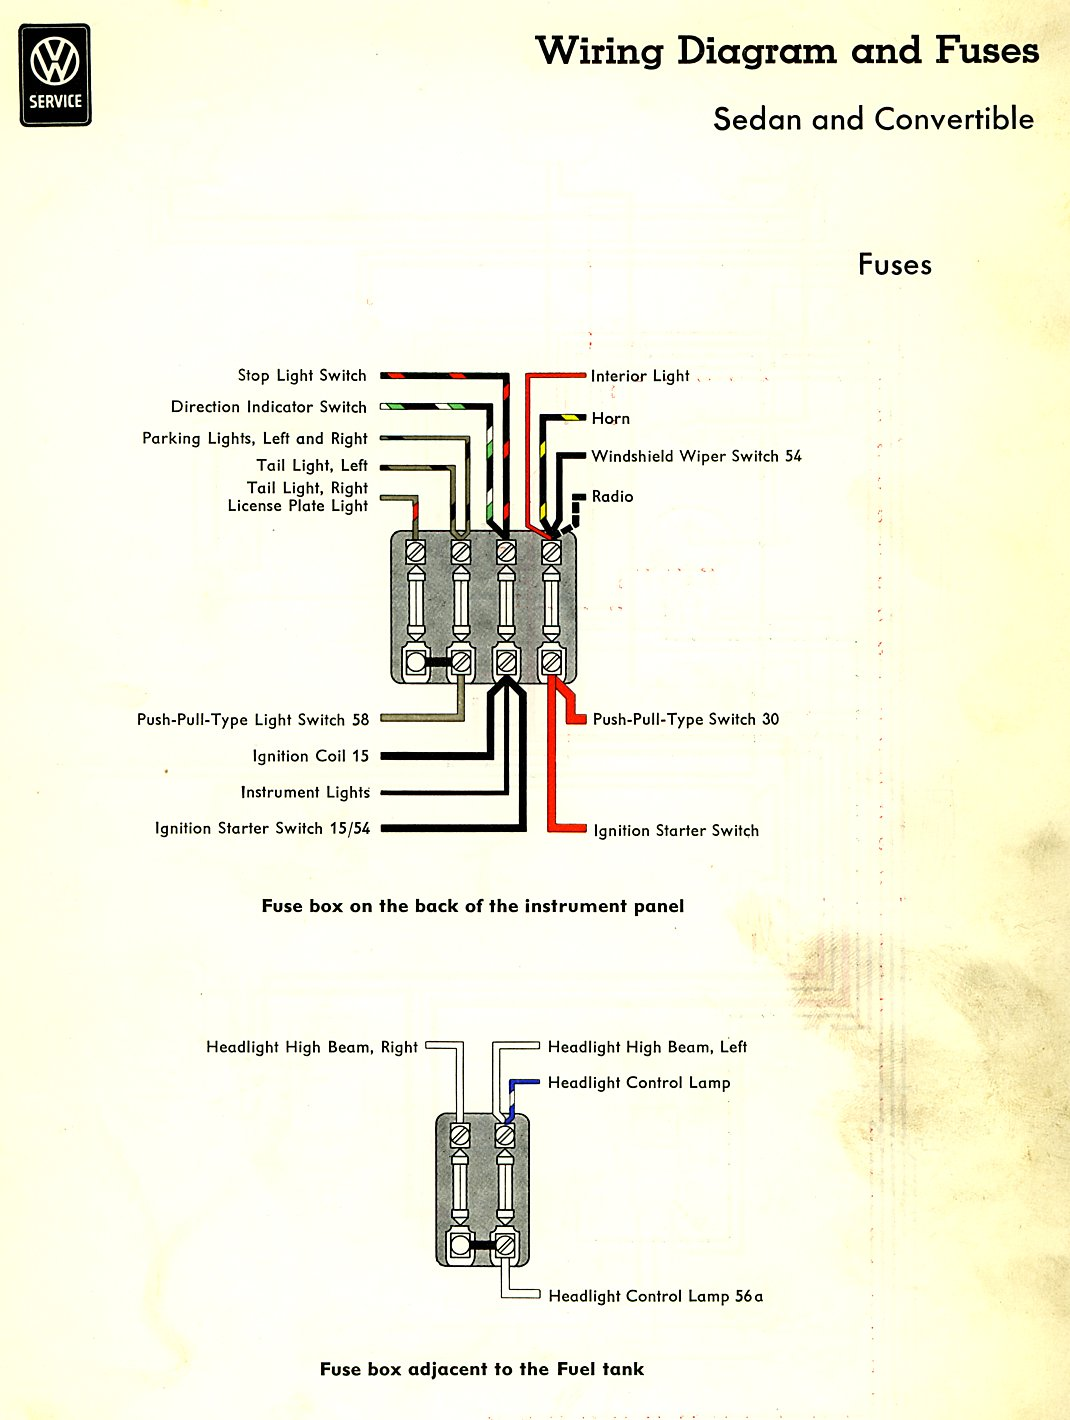 bug_58_fuses Wiring Diagram For Vw Beetle on vw generator wiring diagram, 1973 vw wiring diagram, 1968 vw wiring schematic, 1970 vw ignition wiring diagram, volkswagen wiring diagram, 1968 vw fuse box, 1970 vw electrical diagram, vw beetle front suspension diagram, vw jetta electrical diagram, vw radio wiring diagram, 1974 vw alternator wiring diagram, 1969 vw wiring diagram, 1968 chevy chevelle wiring diagram, 1972 vw wiring diagram, 1971 vw bus wiring diagram, 68 vw wiring diagram, 71 vw wiring diagram, vw beetle engine diagram, 70 vw wiring diagram, 1960 vw wiring diagram,